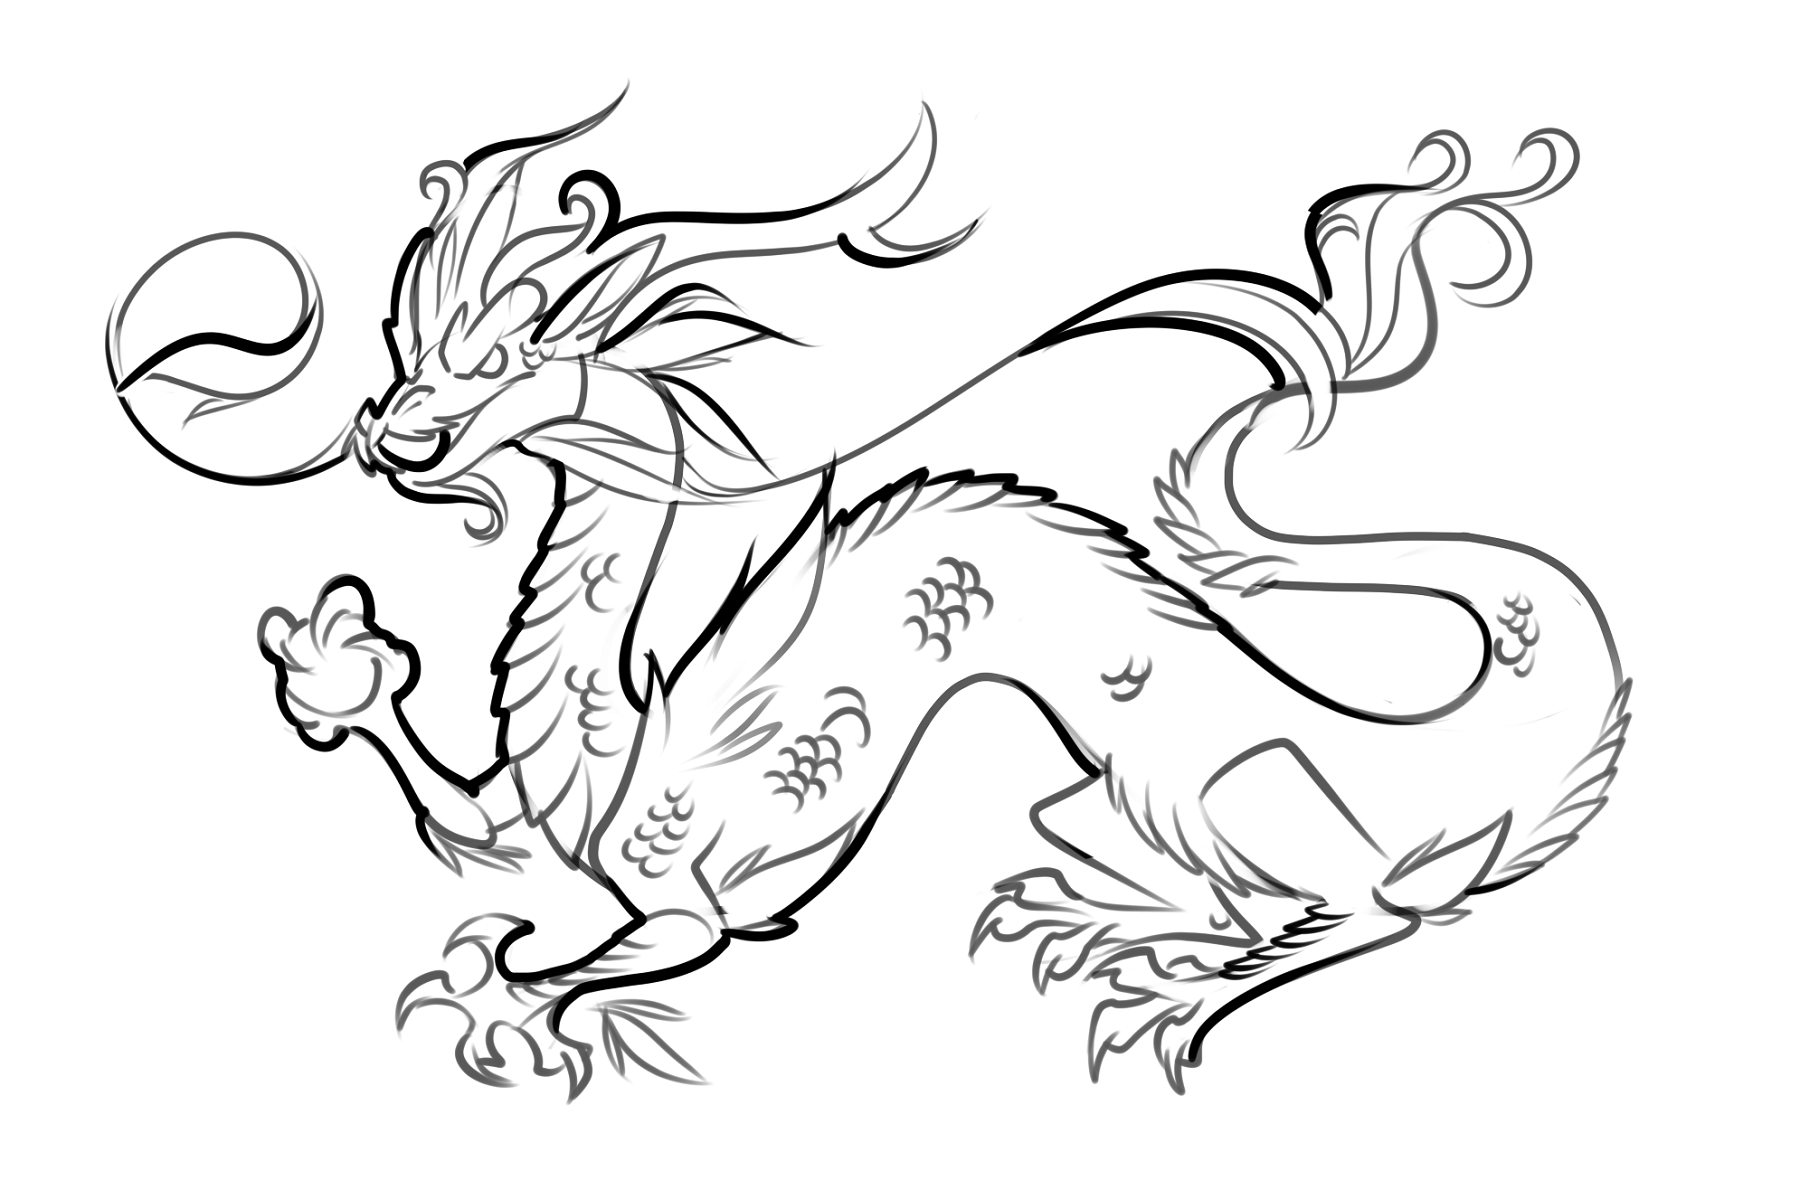 chinese dragon colouring pictures chinese dragon coloring 4 woo jr kids activities dragon chinese colouring pictures